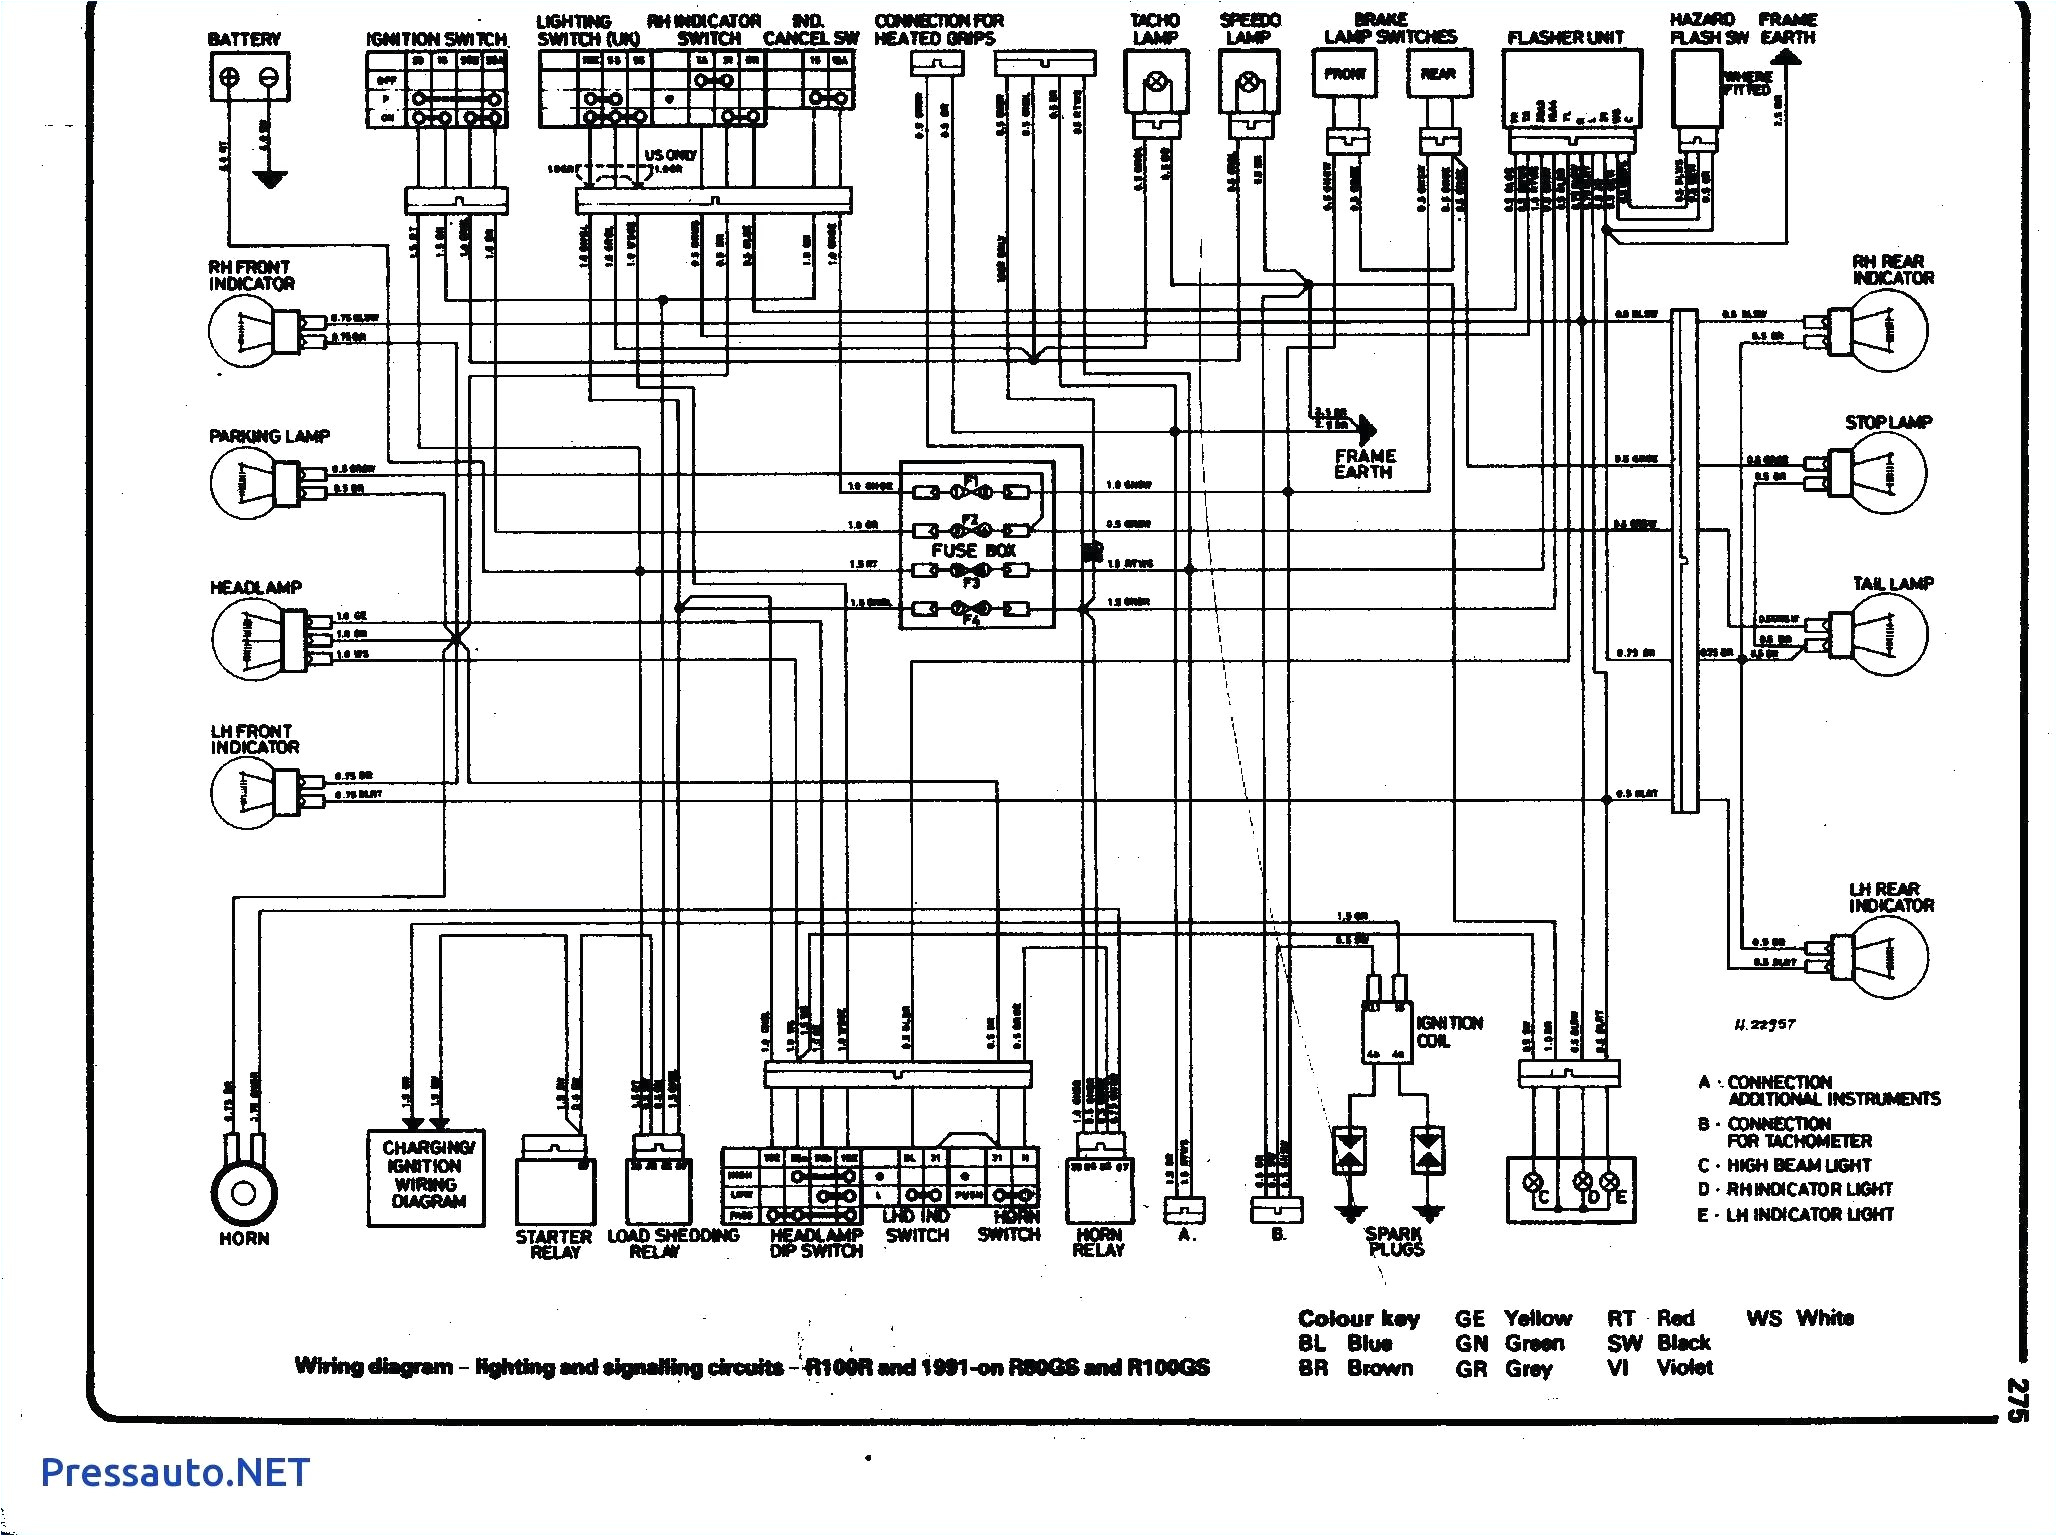 boss plow wiring diagram new meyer snow plow wiring diagram for headlights best famous e47 the